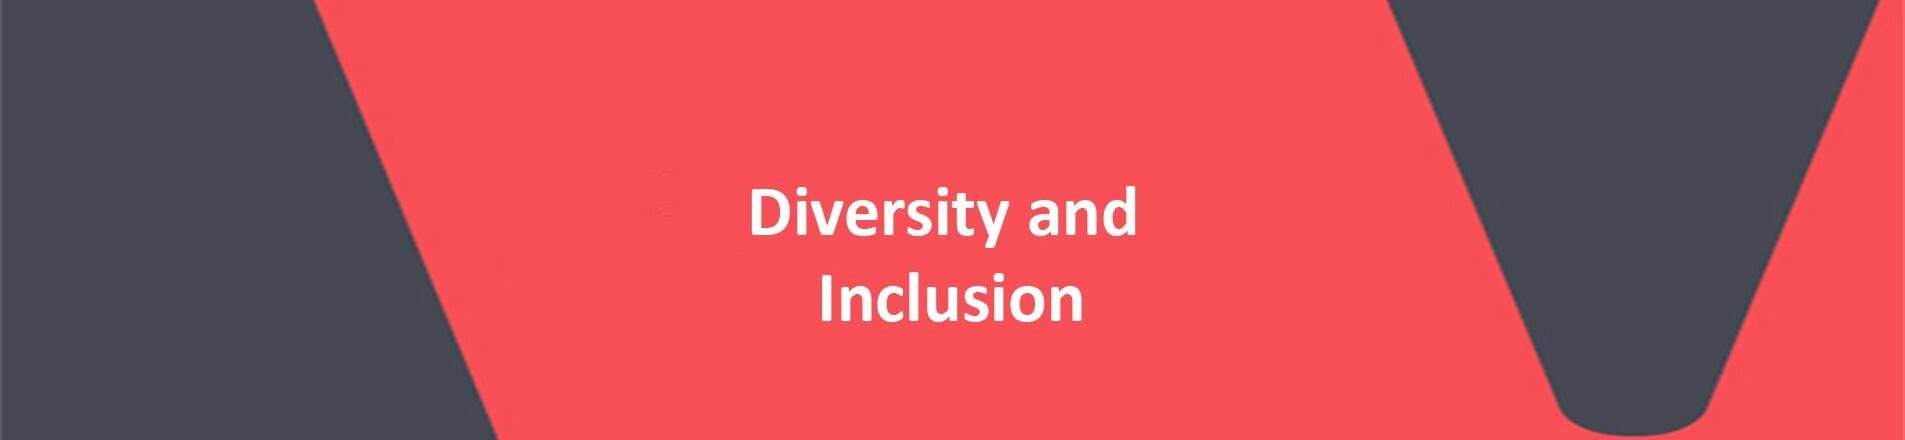 White text on red background spelling Diversity and Inclusion.